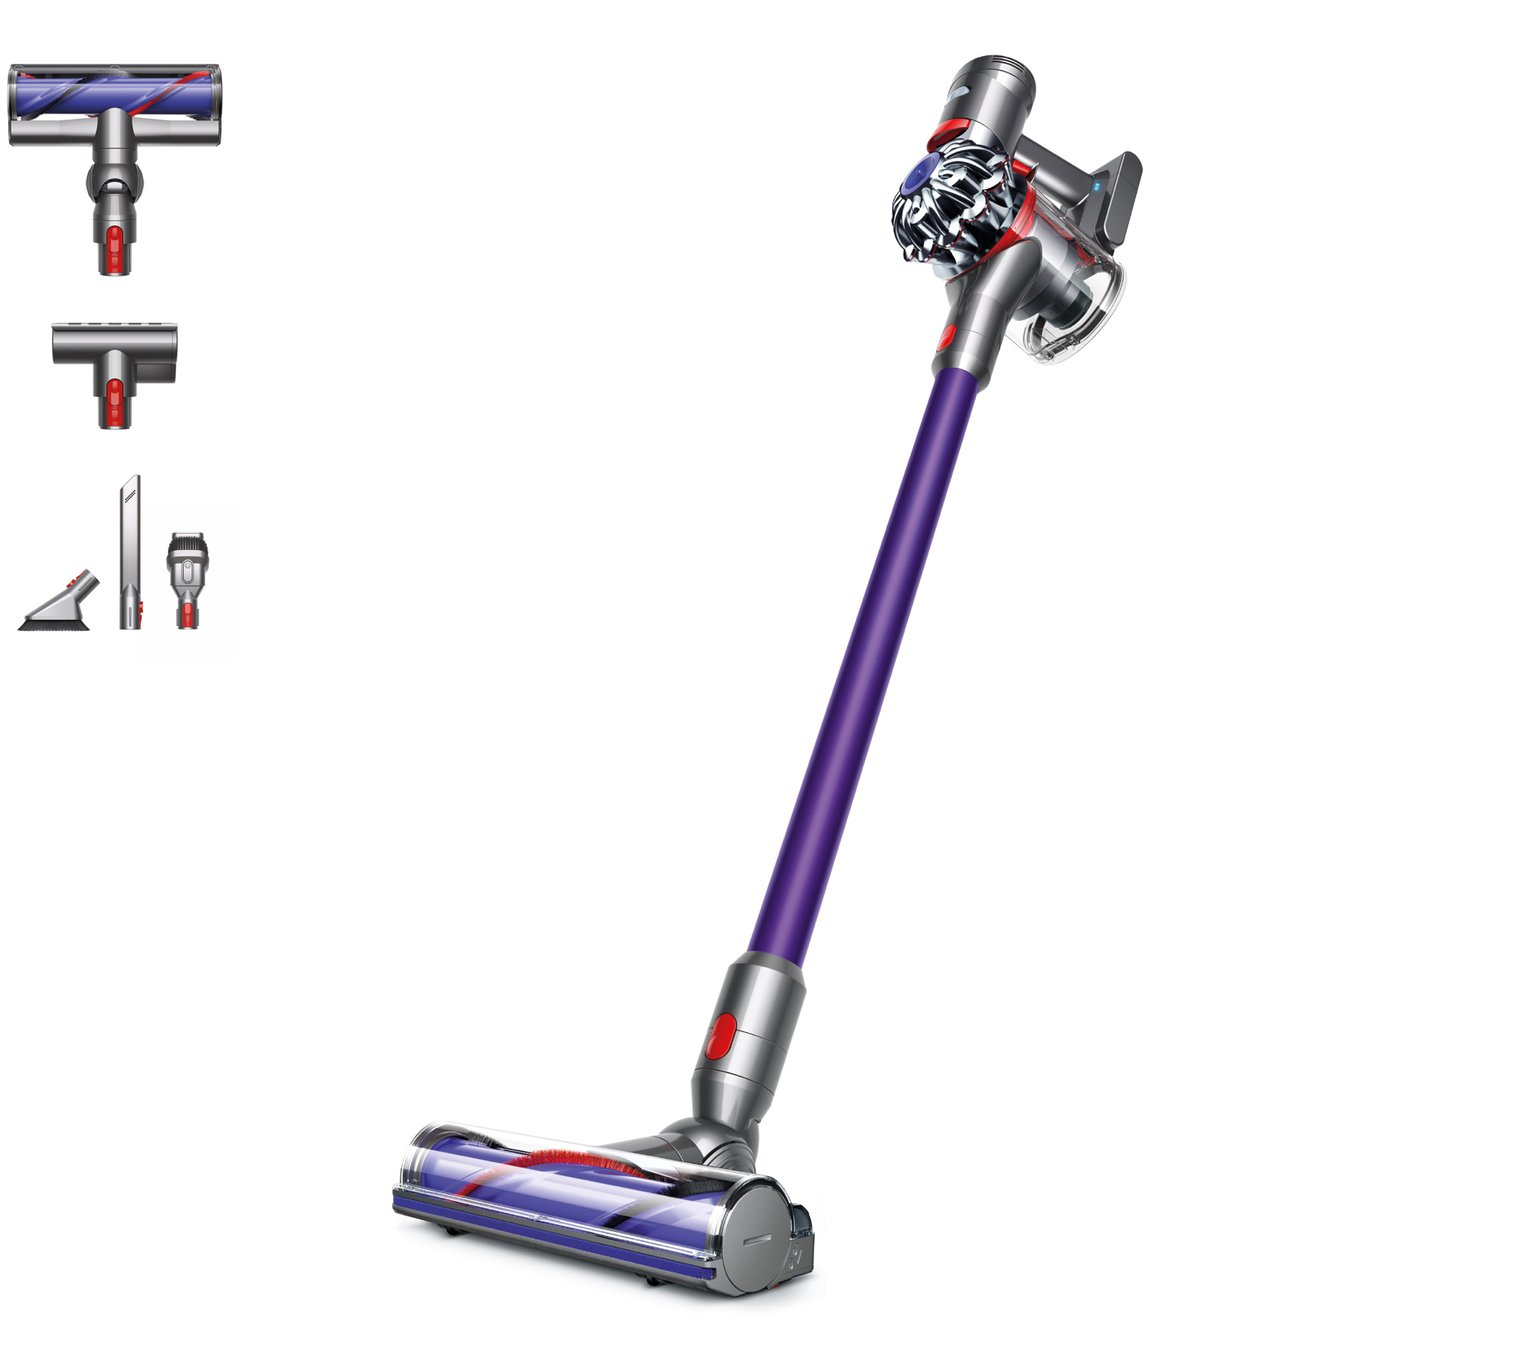 Dyson V7 Animal Cordless Vacuum Cleaner. Review